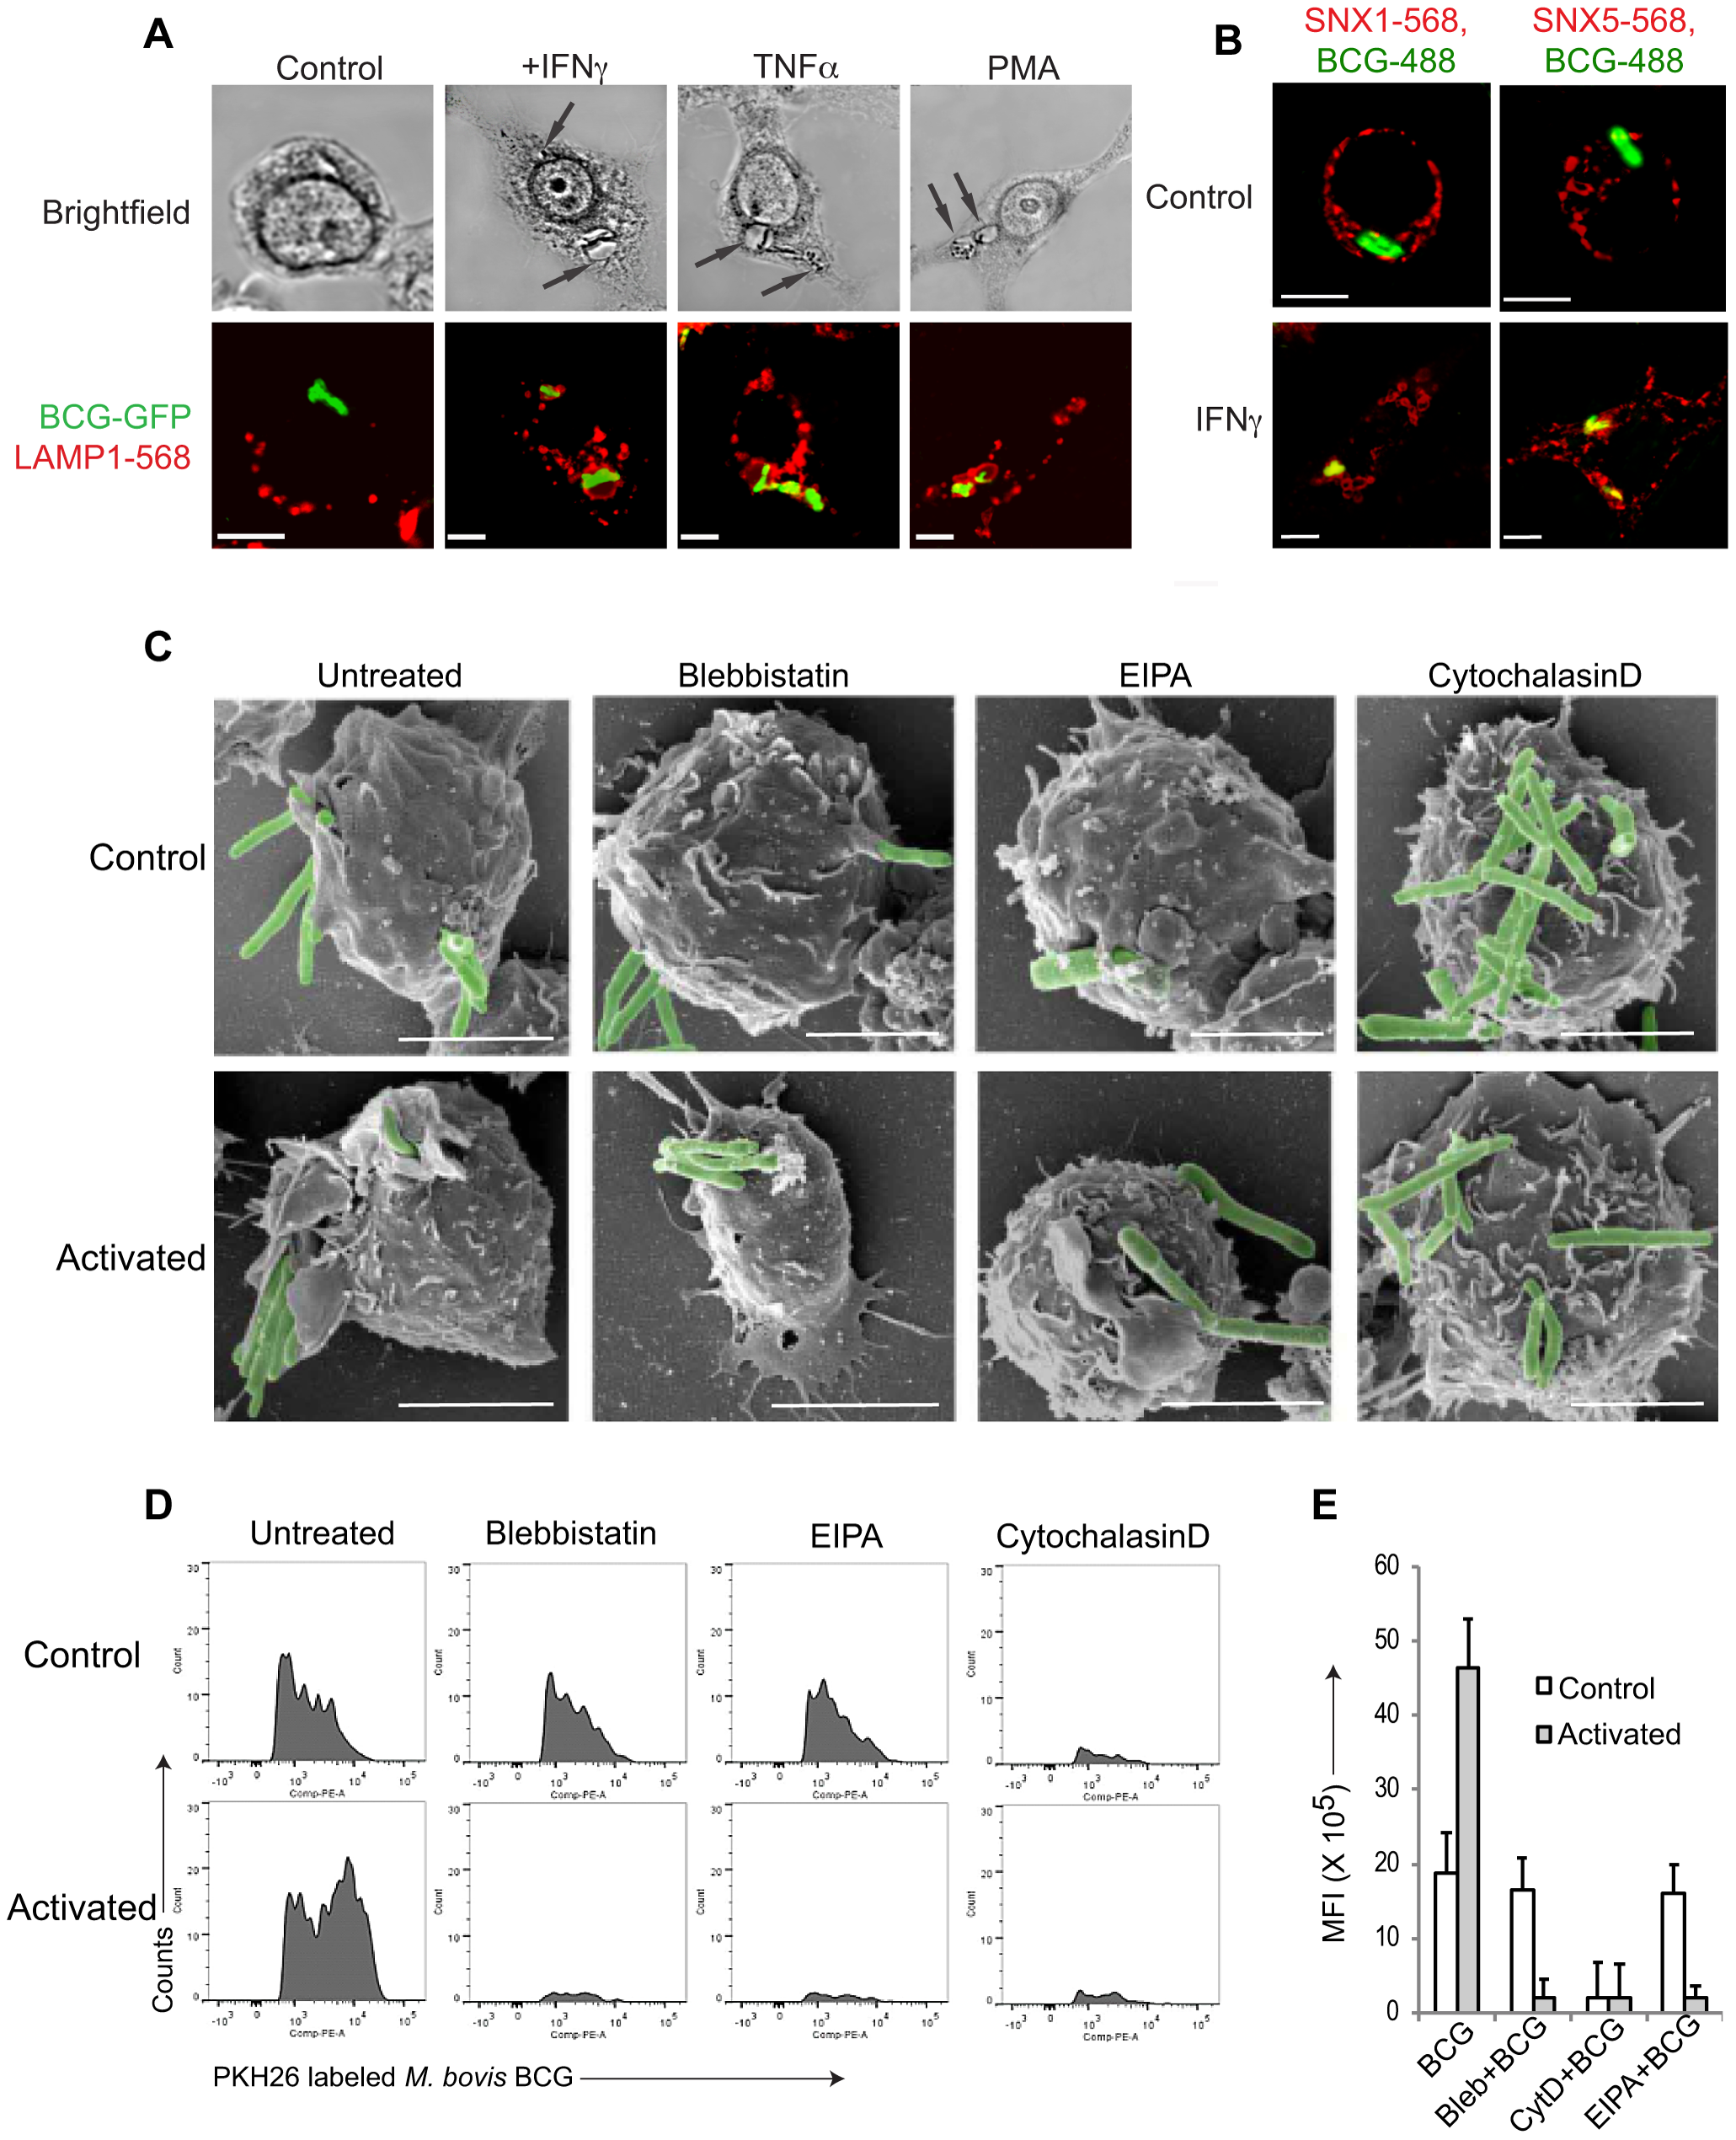 Macrophage activation results in mycobacterial entry via macropinocytosis.